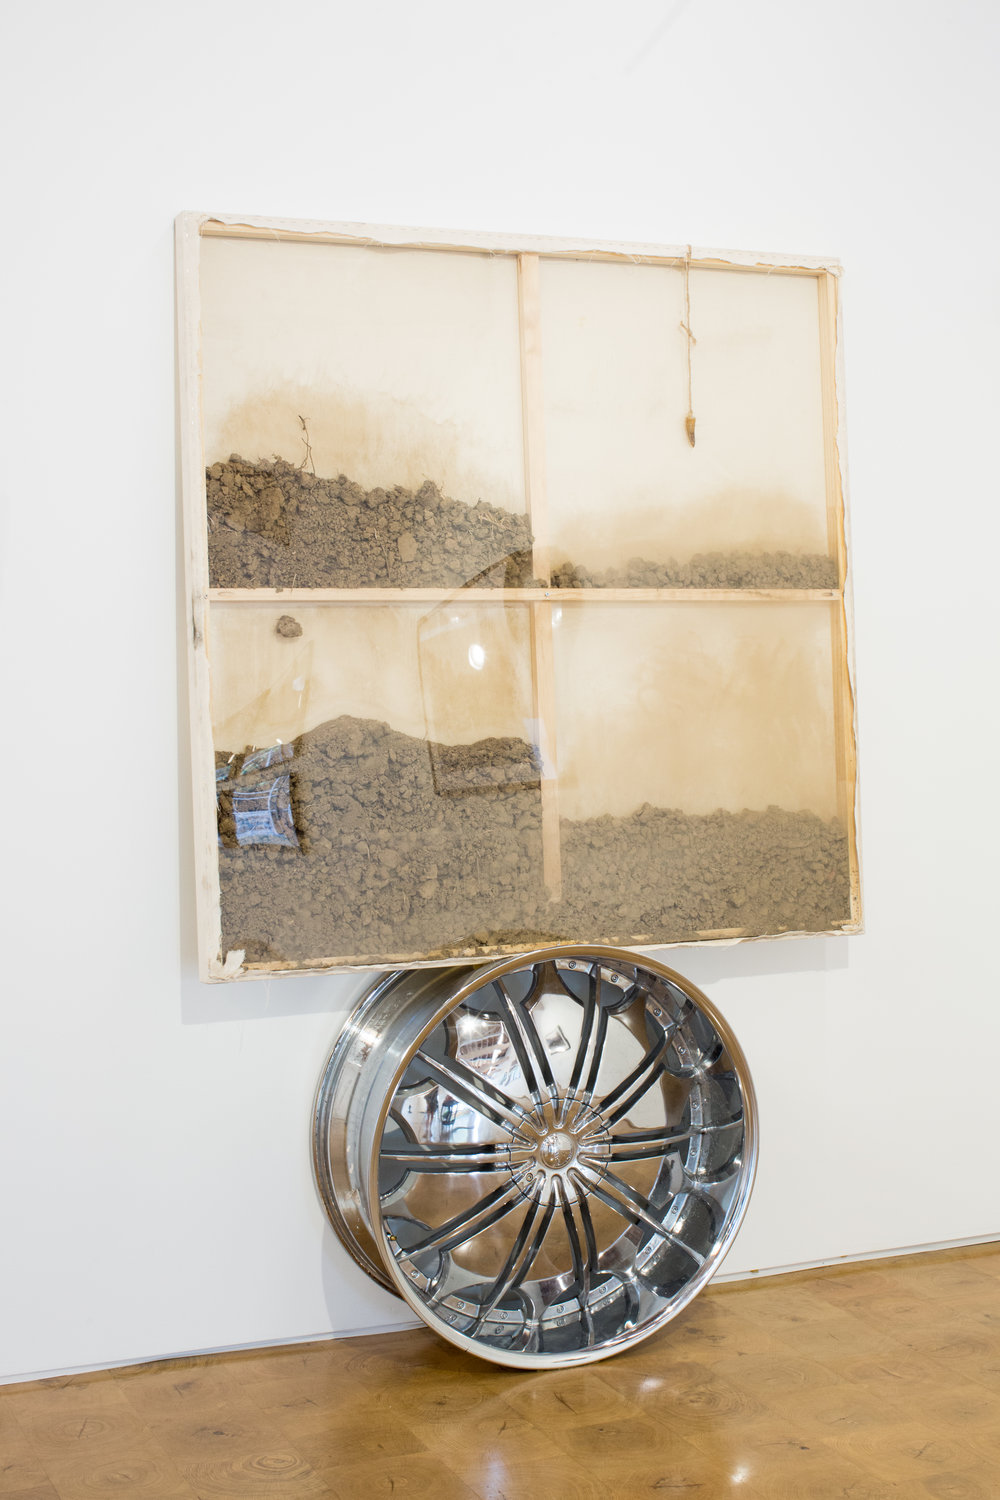 Jordan Weber.  Untitled , 2017.  Giganotosaurus tooth, chrome rim, canvas, and soils from Bethlehem, Palestine; Malcolm X Birthsite, Omaha, NE; and Ferguson, MO.